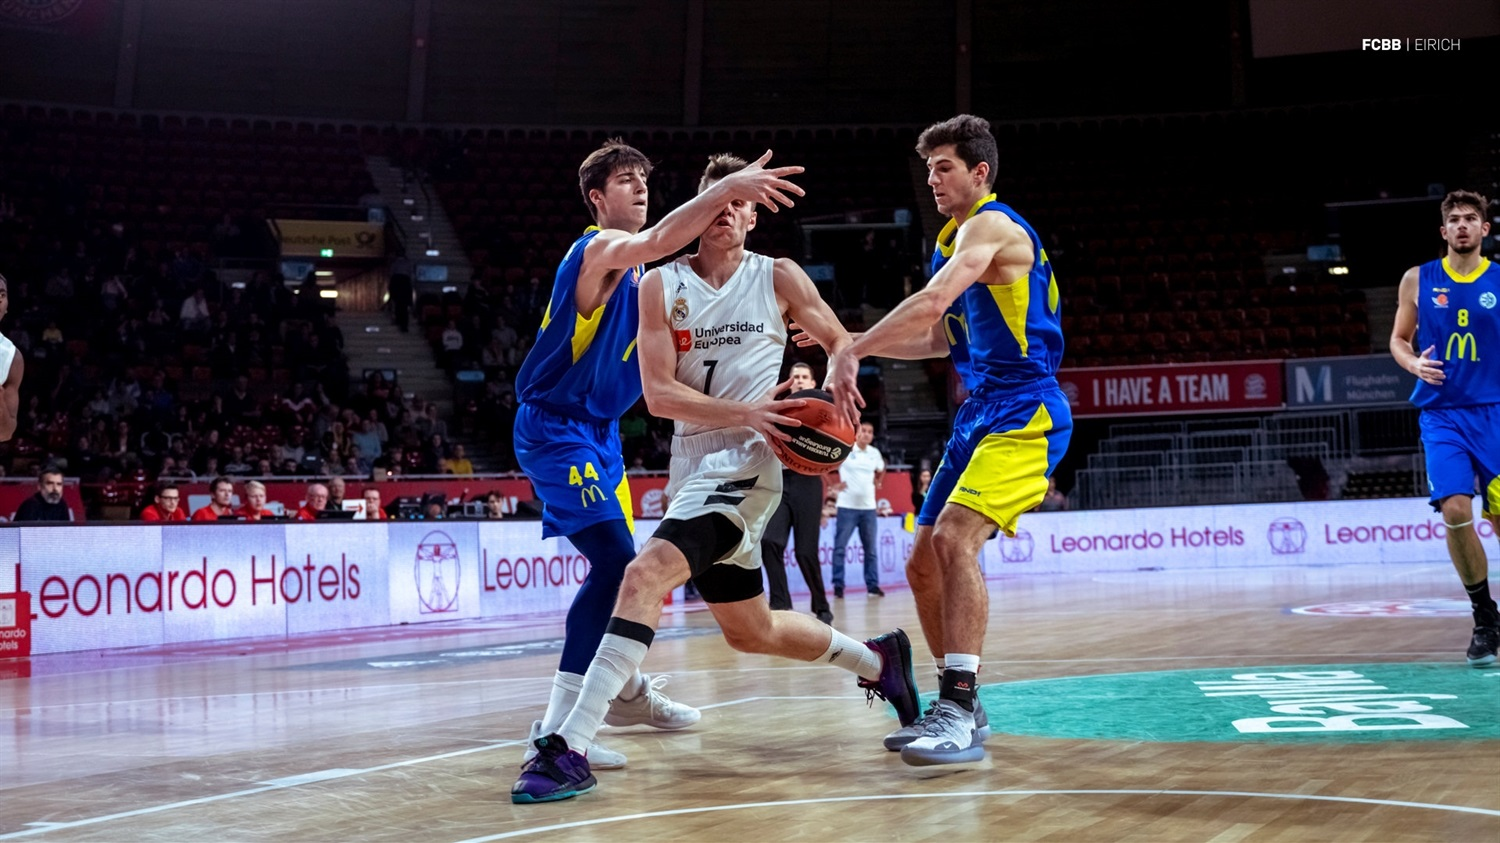 Mario Nakic - U18 Real Madrid - ANGT Munich 2019 (photo FCBB - Eirich) JT18